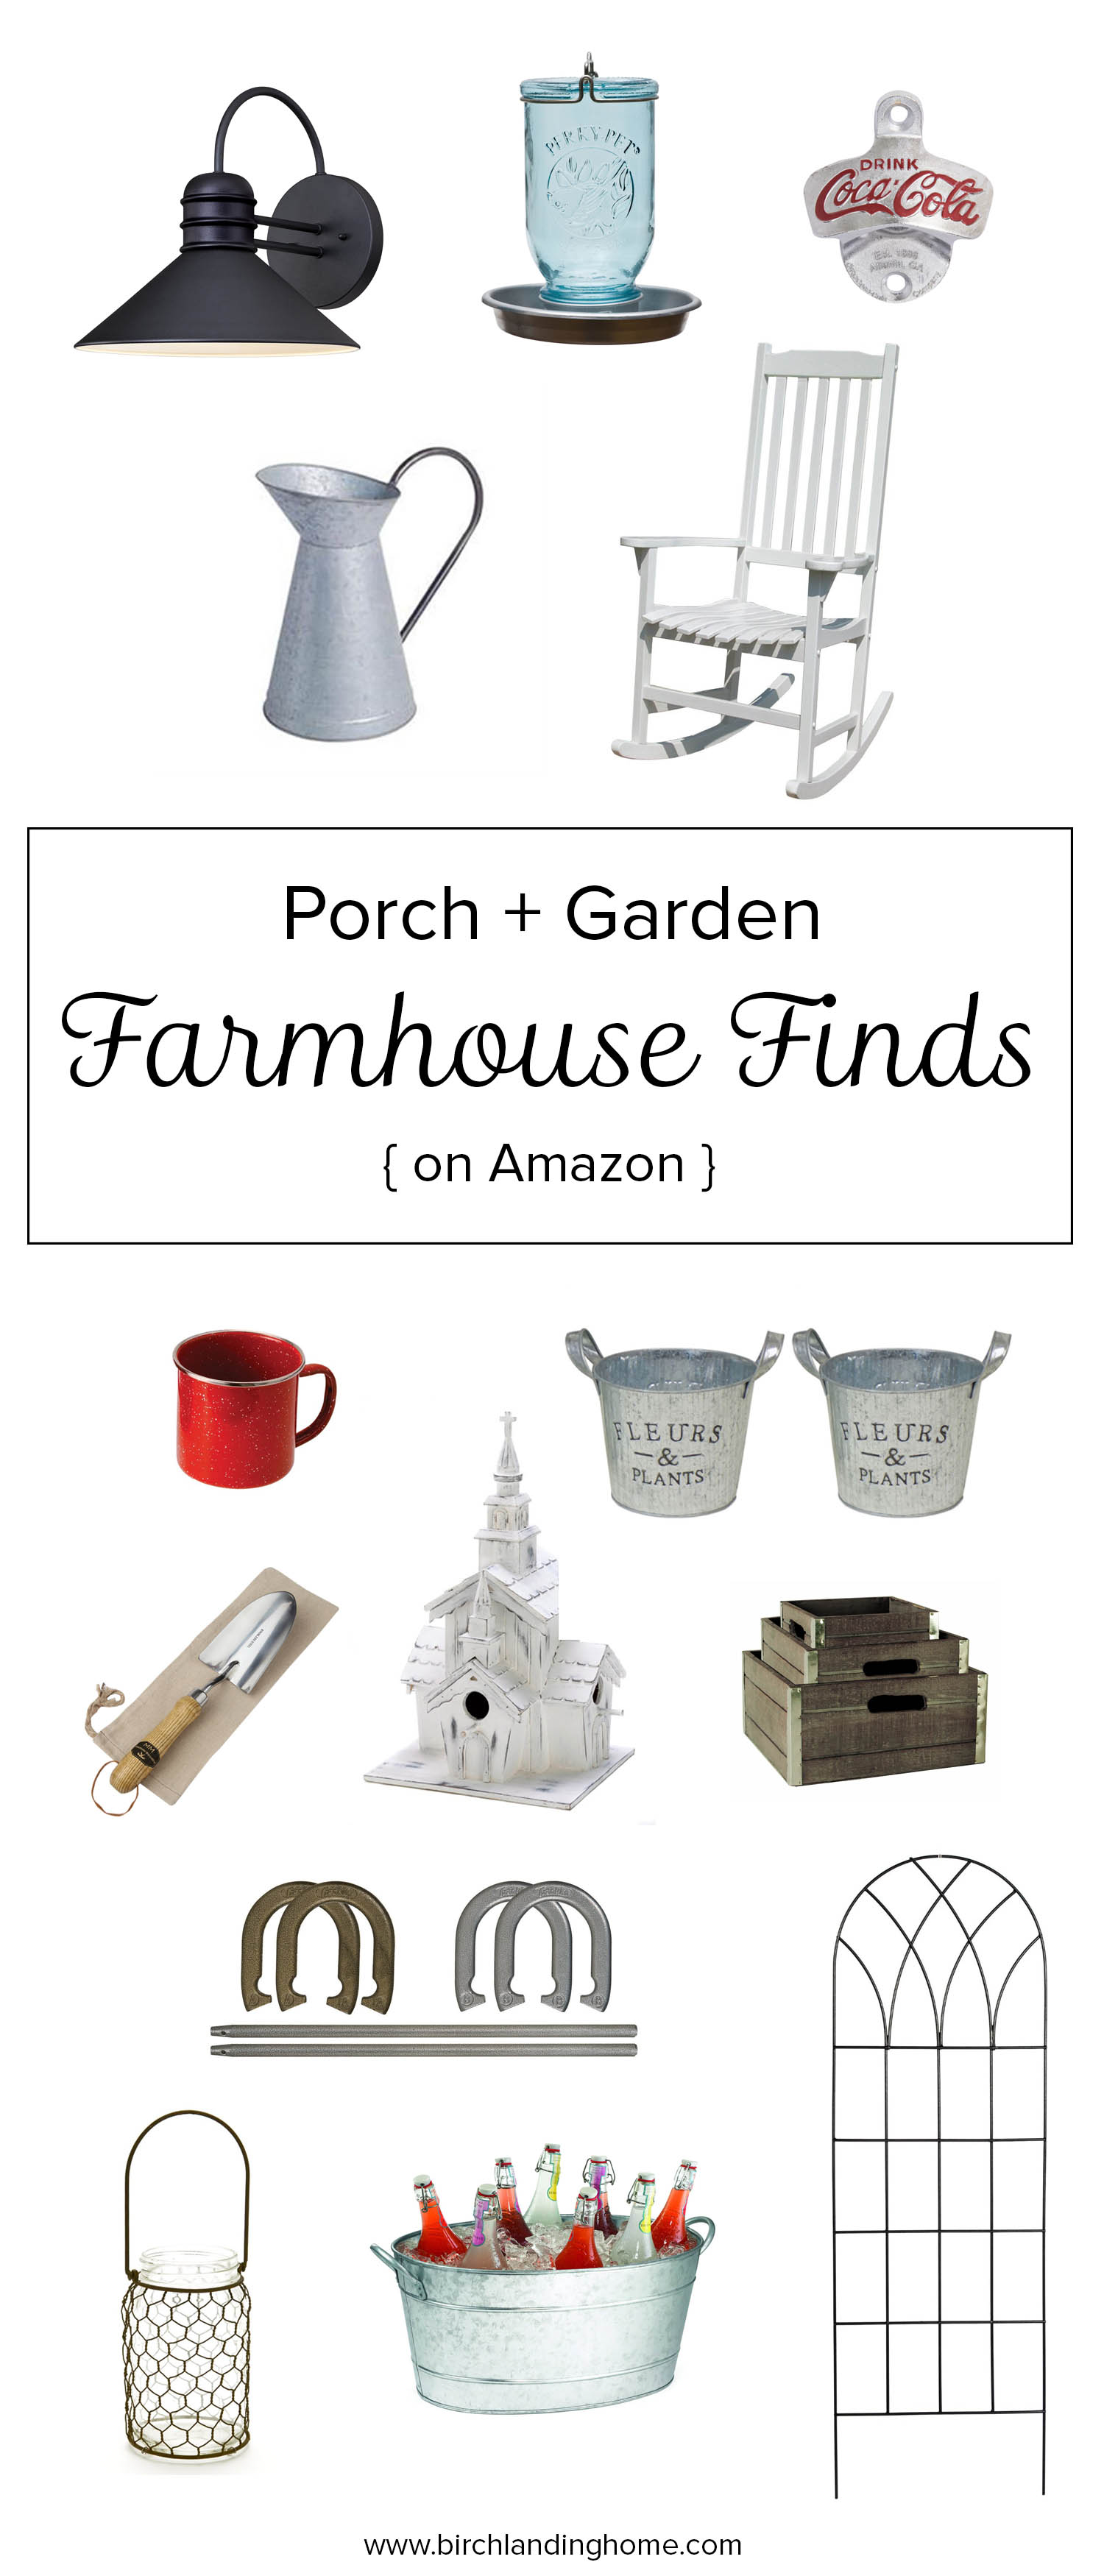 Farmhouse Fixer Upper Finds for your Porch and Garden from Amazon